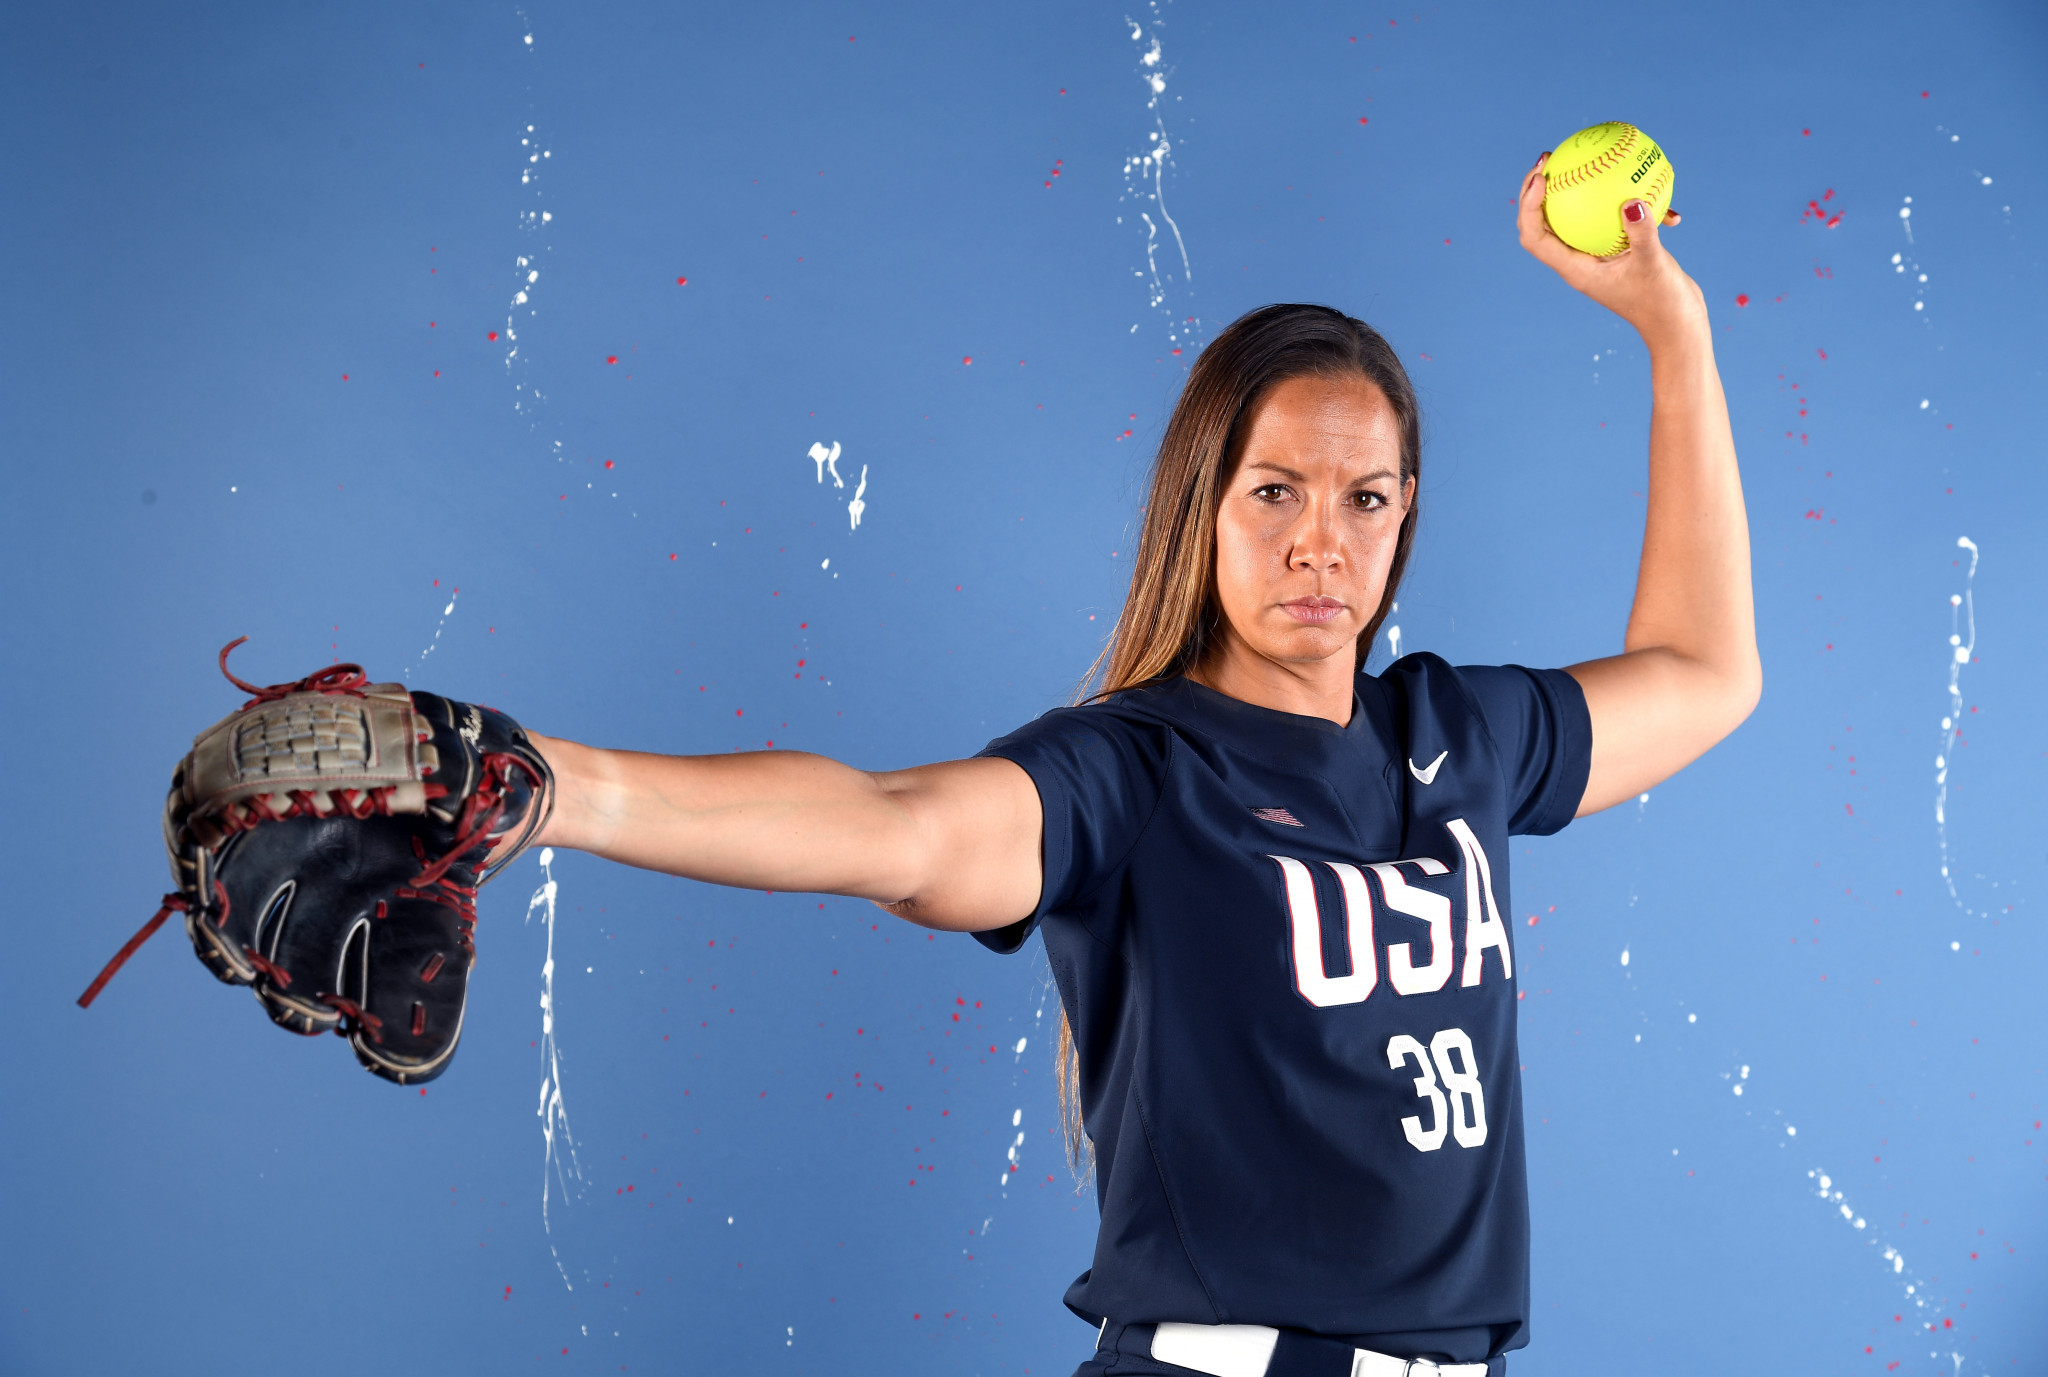 USA softball star Osterman aims to help next generation at Tokyo 2020